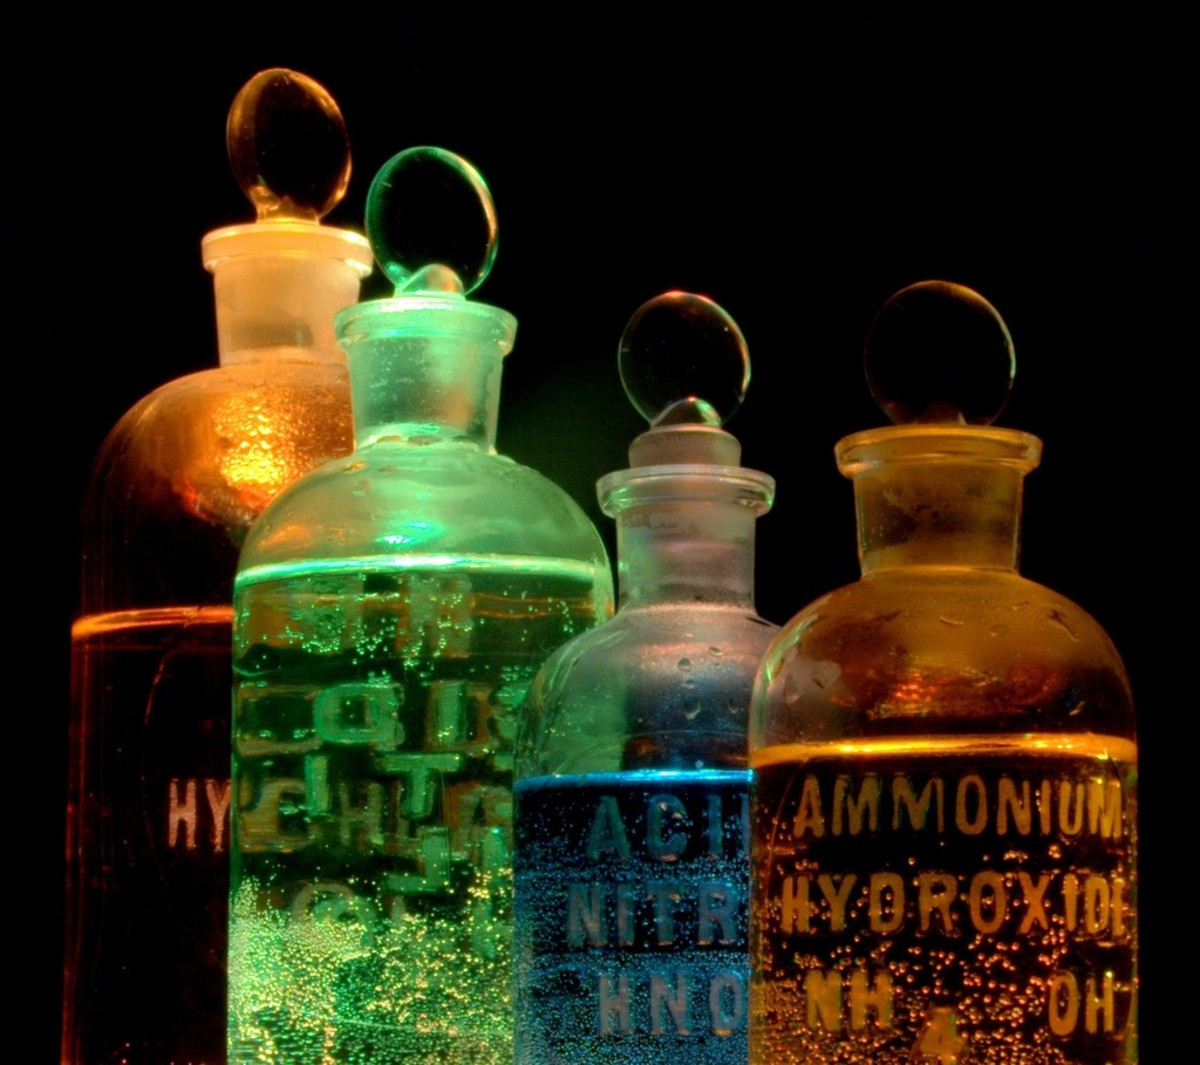 Christians in Science: The Christian Chemist